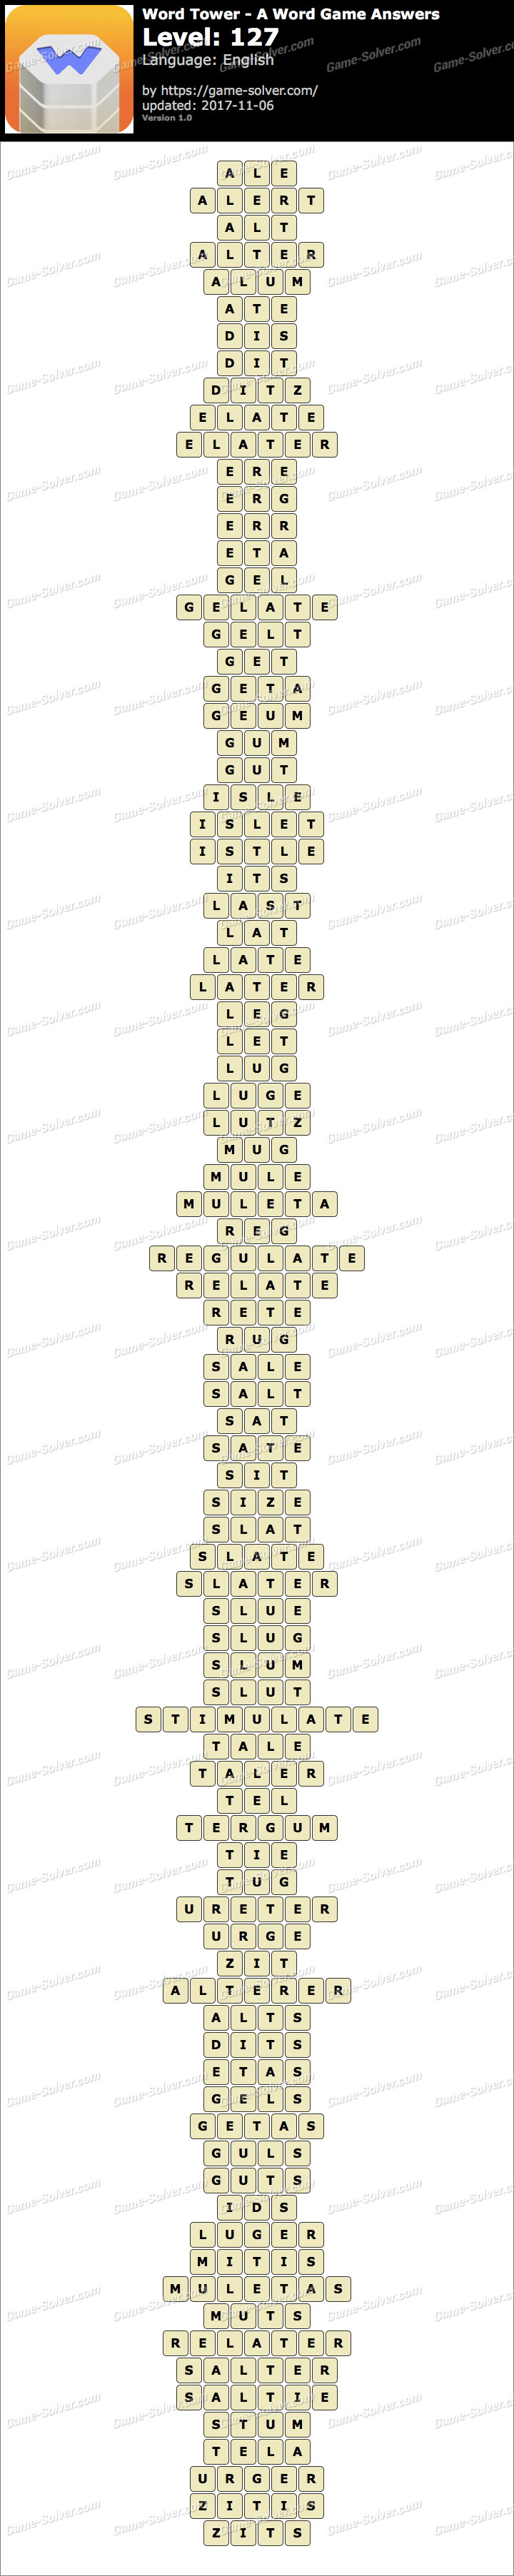 Word Tower Level 127 Answers